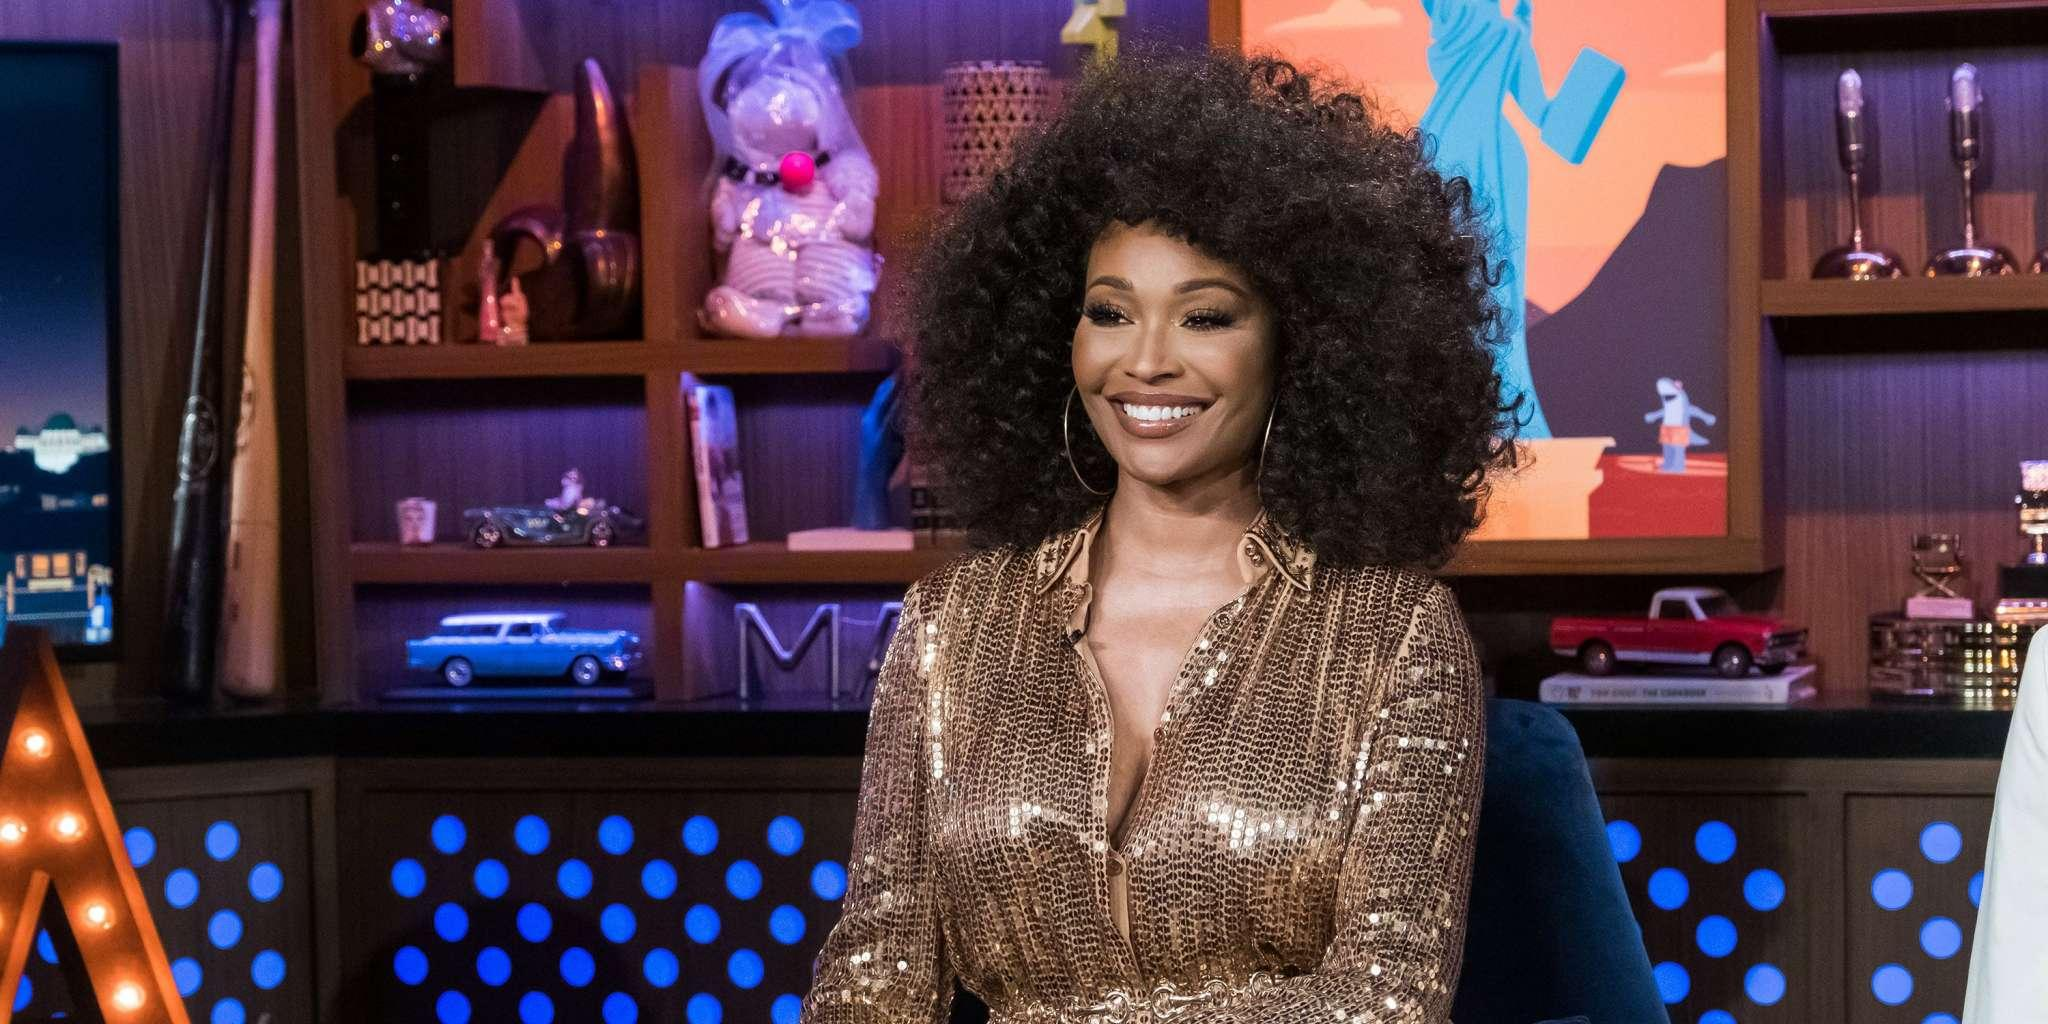 Cynthia Bailey's Throwback Photo Of Noelle Robinson Will Make Your Day - See It Here